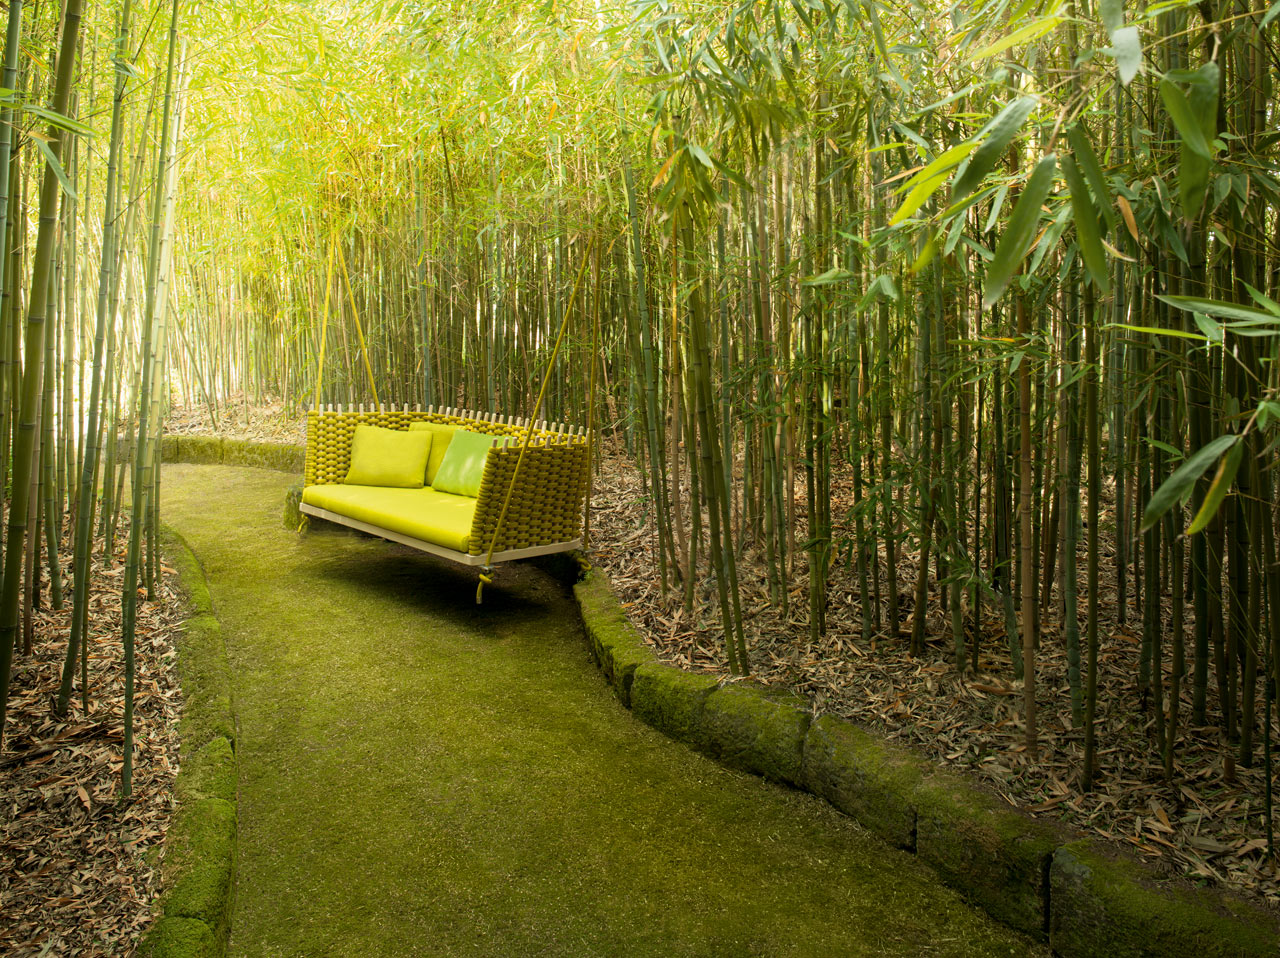 Luminaire Welcomes Paola Lenti to Miami on December 3, 2015 During Design Miami